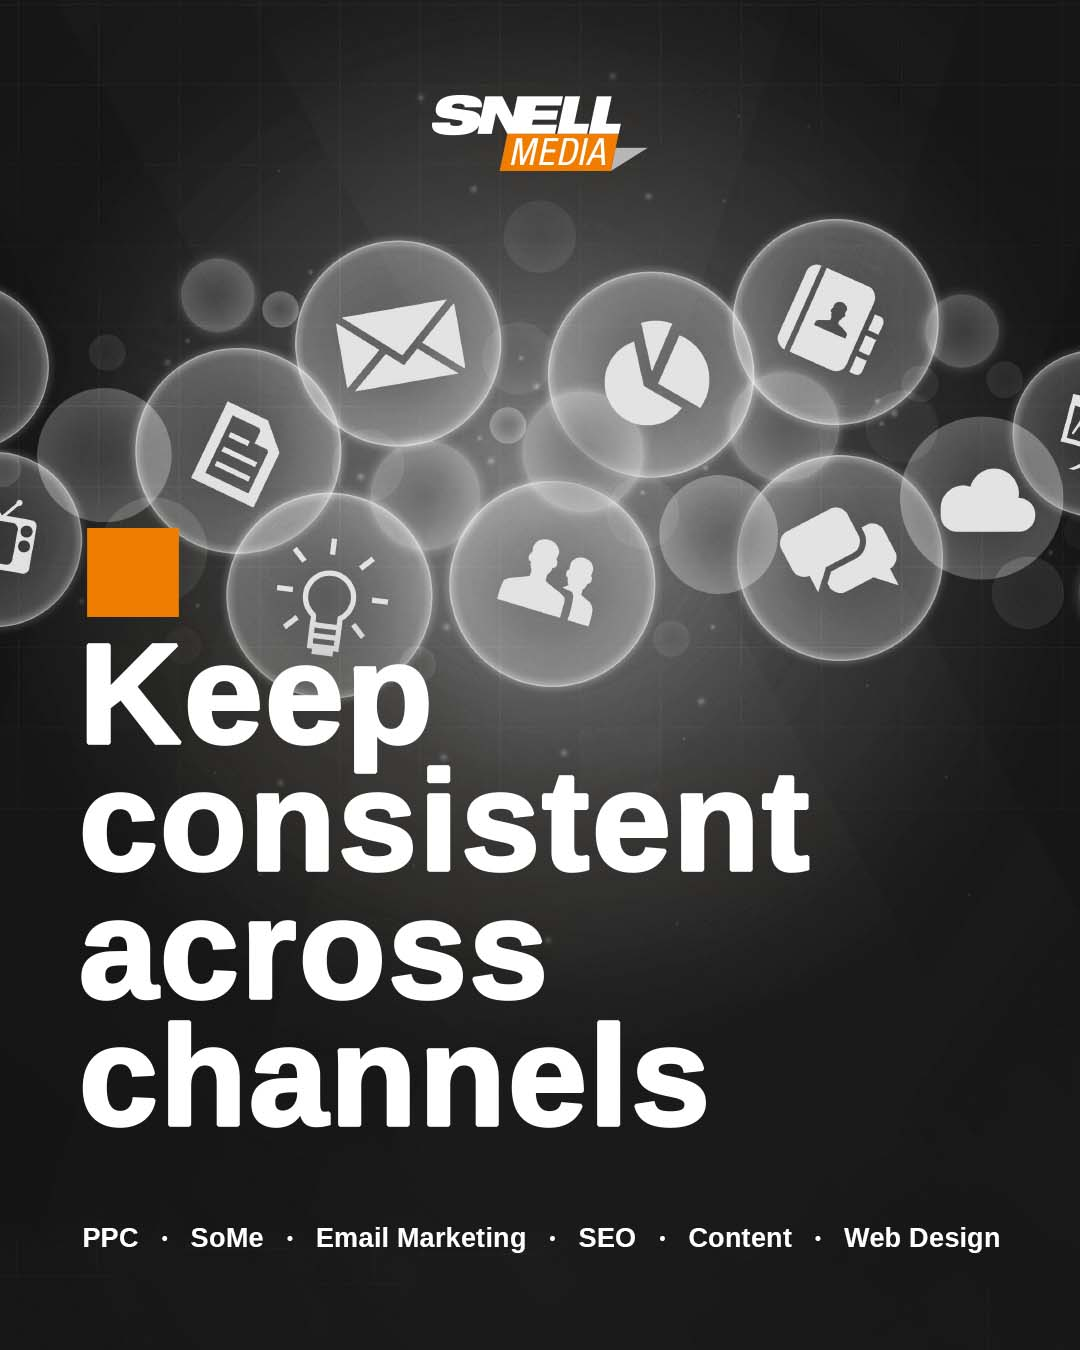 Be Consistent Across Channels